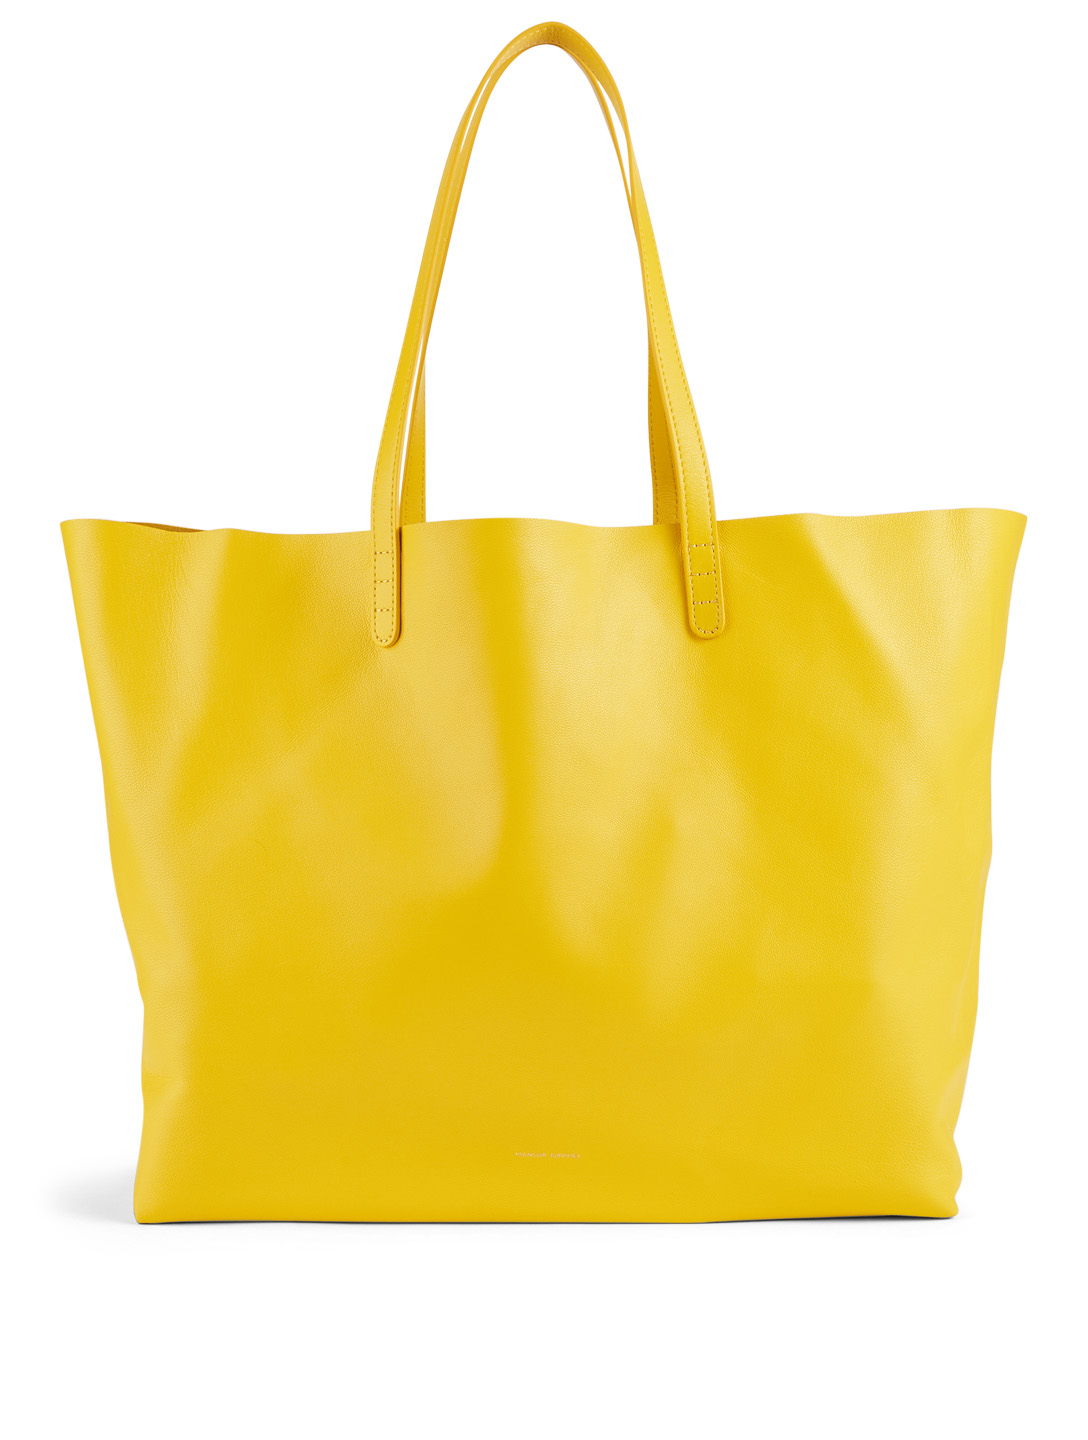 MANSUR GAVRIEL Leather Oversized Tote Bag Women's Yellow